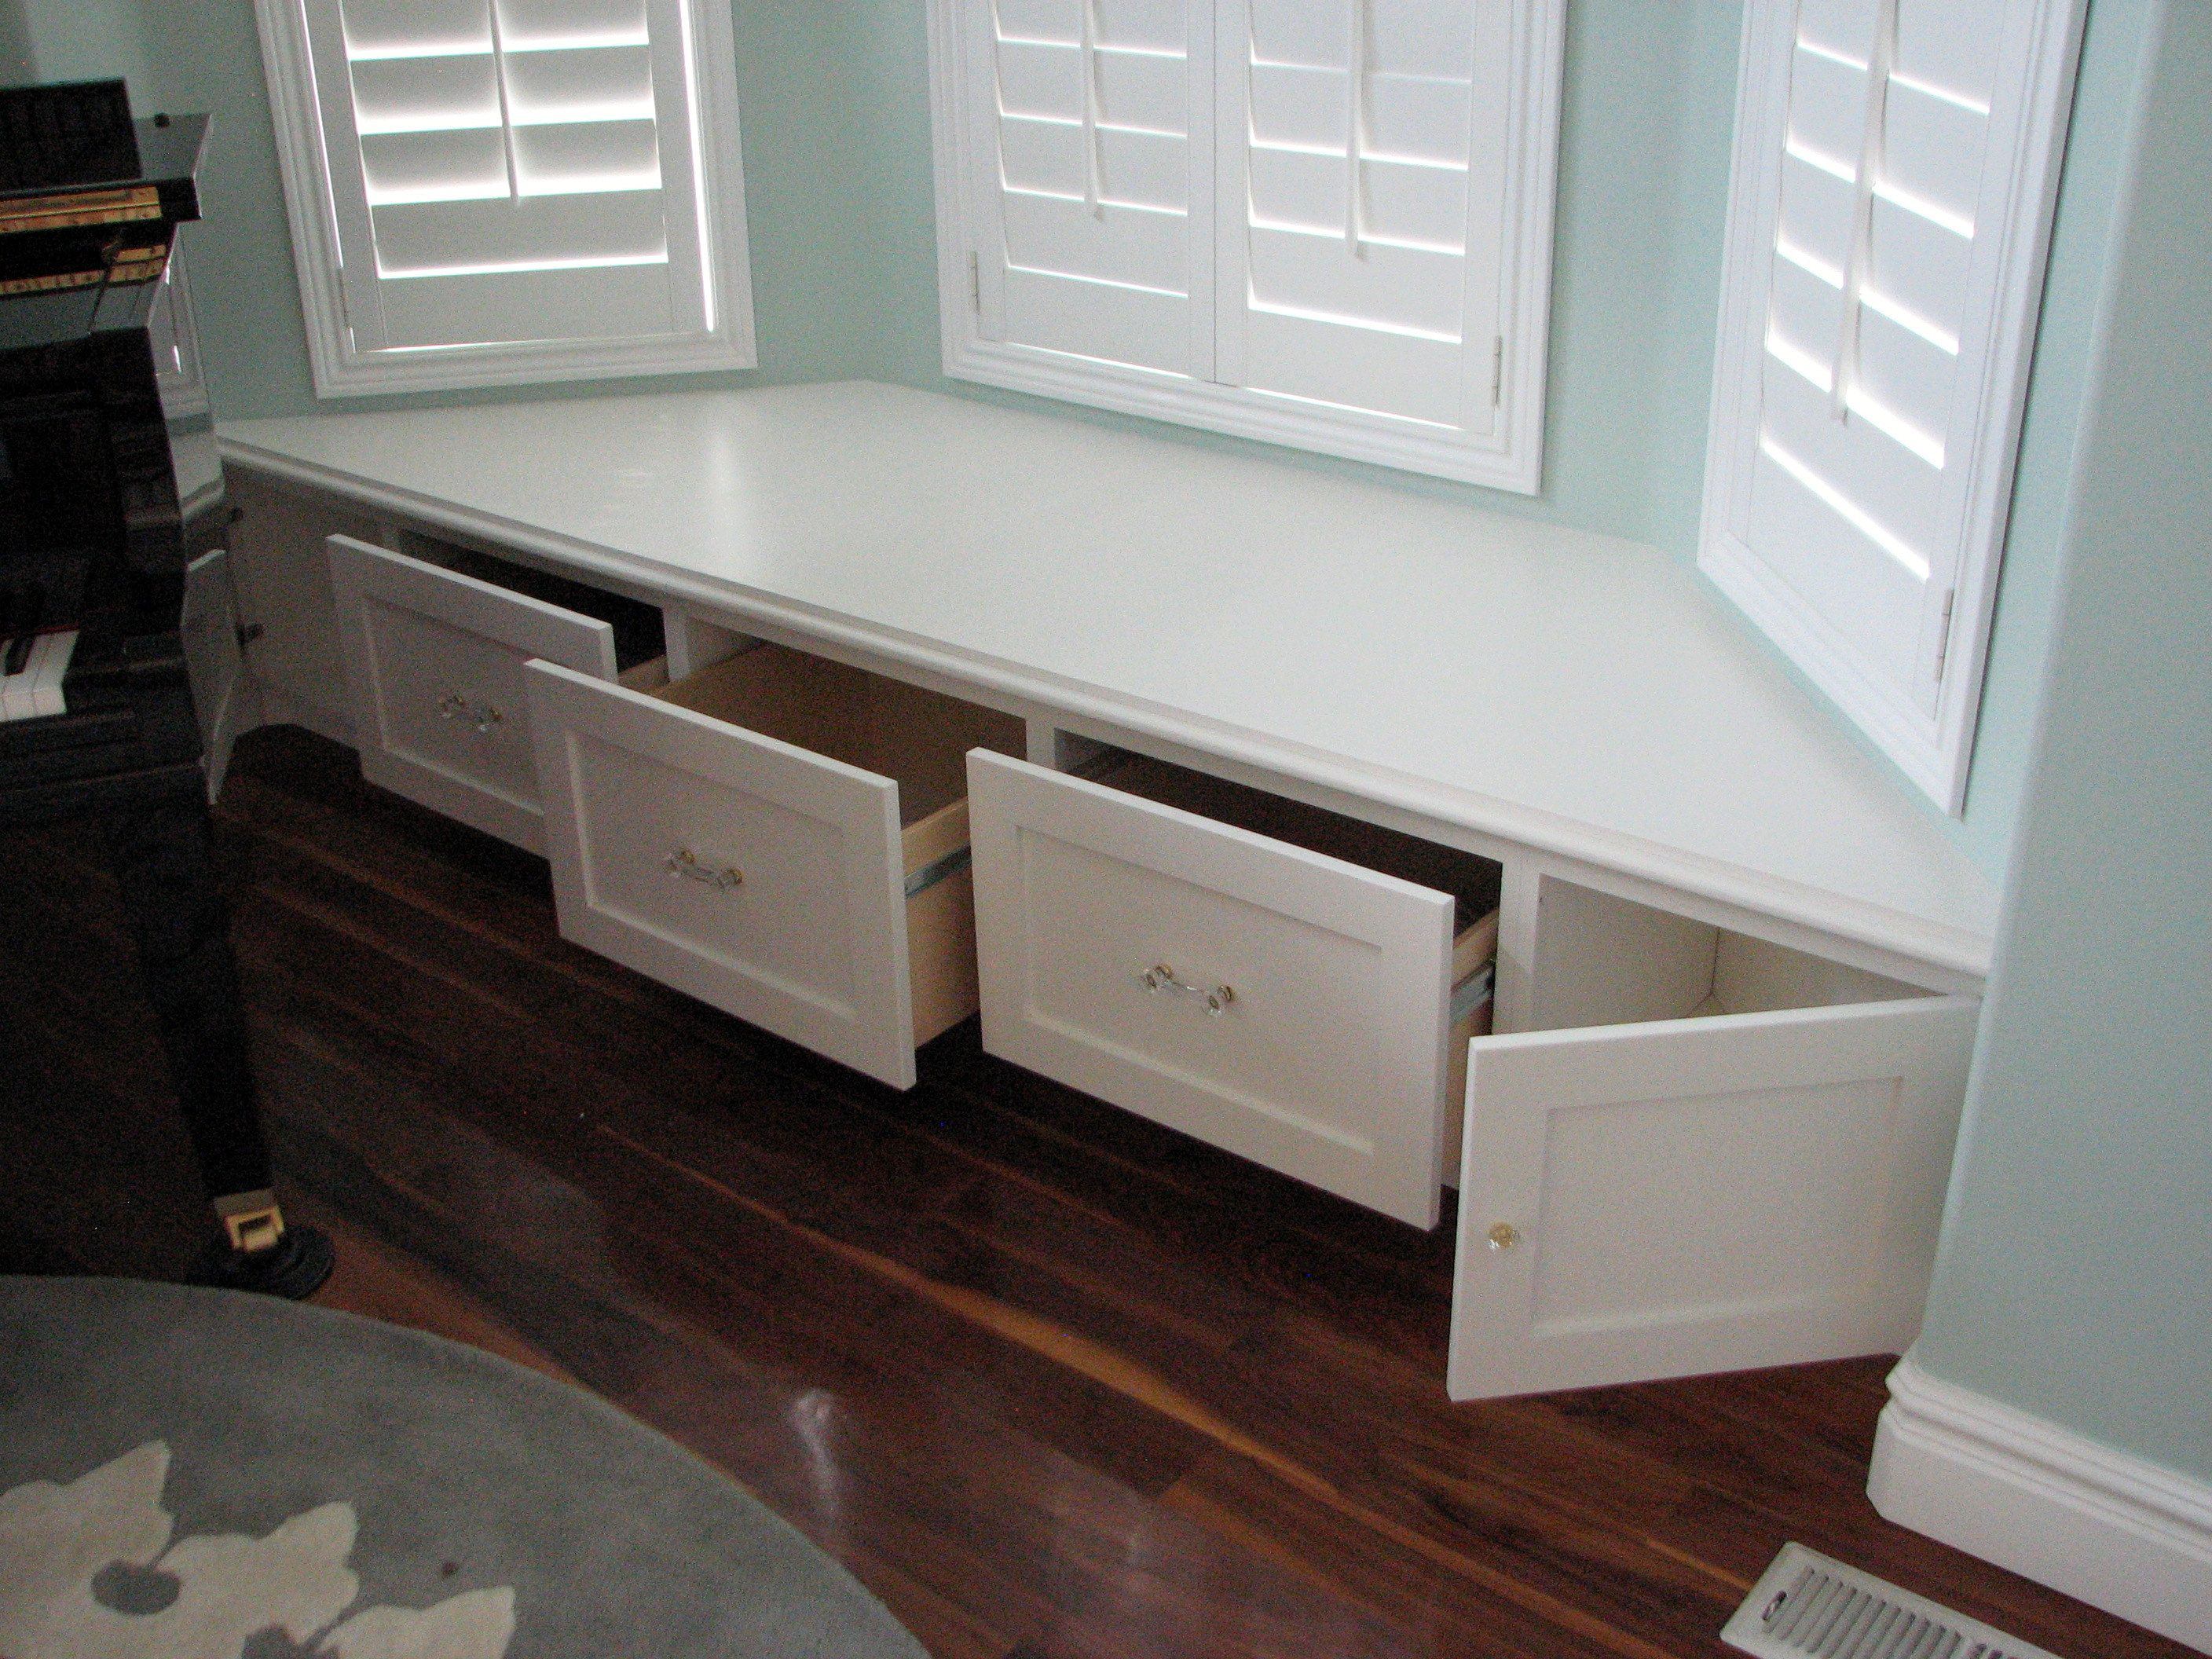 Seating With Storage Underneath Image Result For Re Home Decor Ideas Simple Diy Inspiration